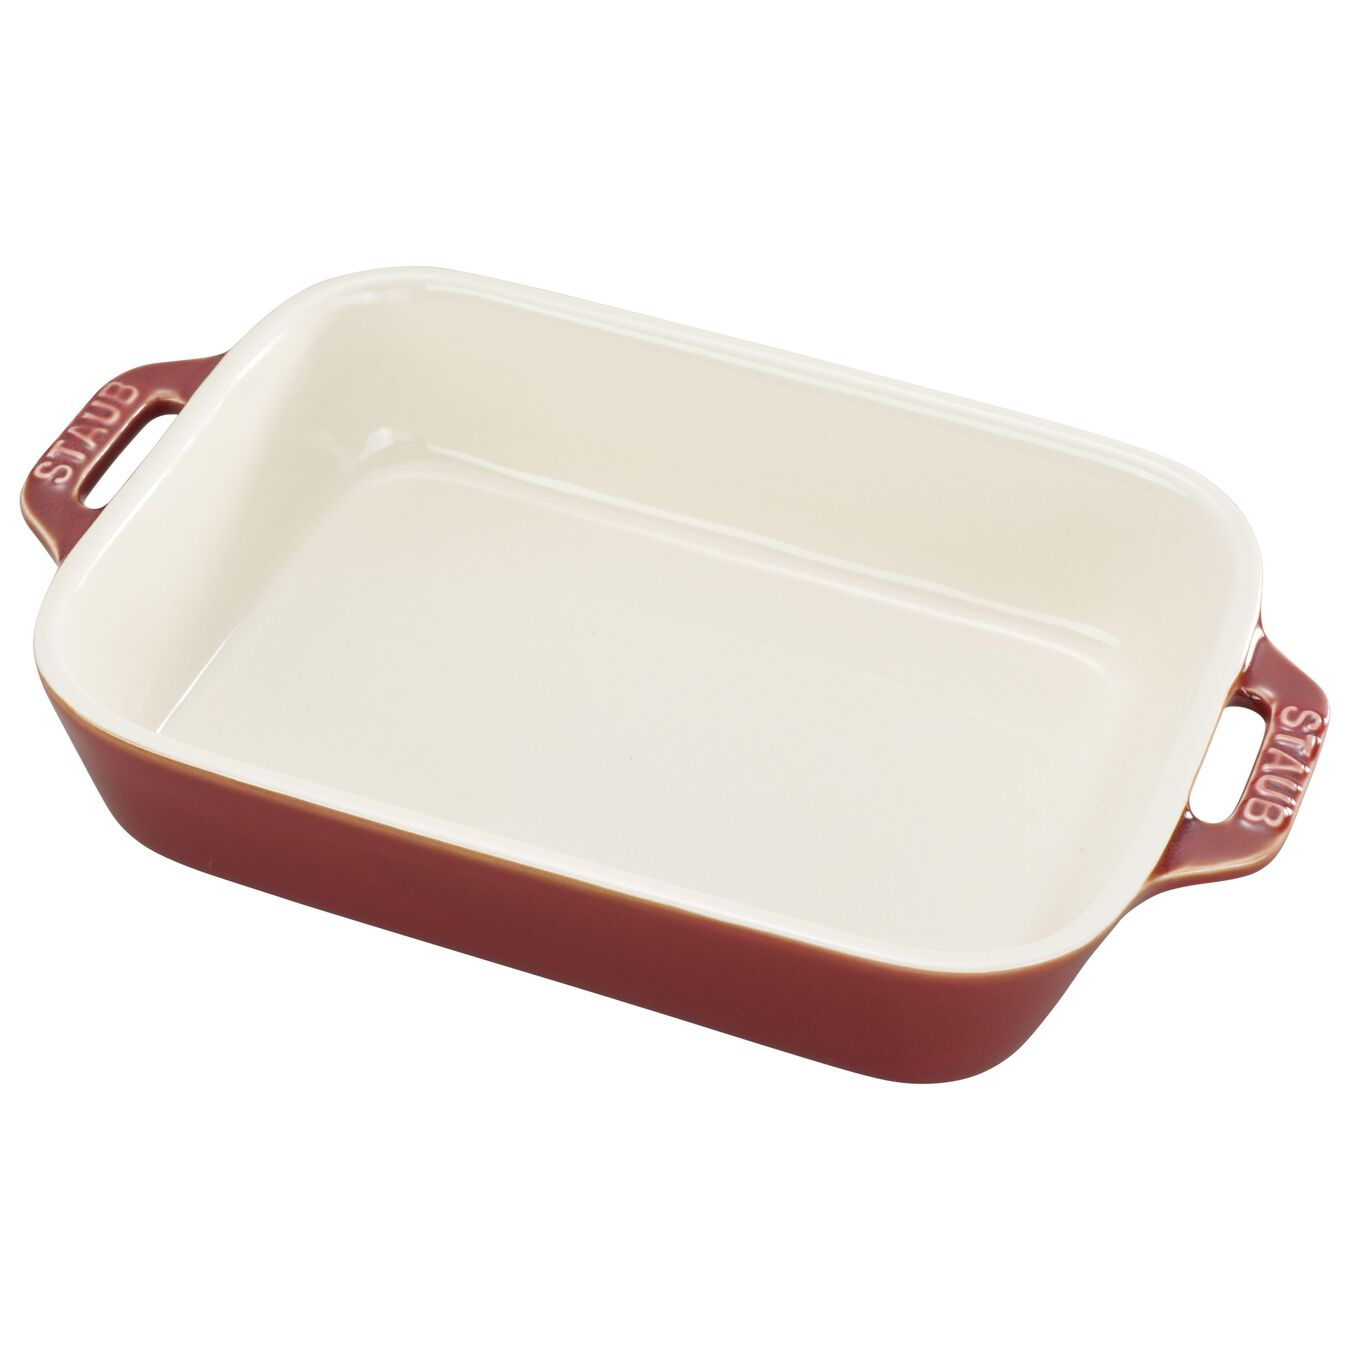 2-pc, square, Rectangular Baking Dish Set, red,,large 2